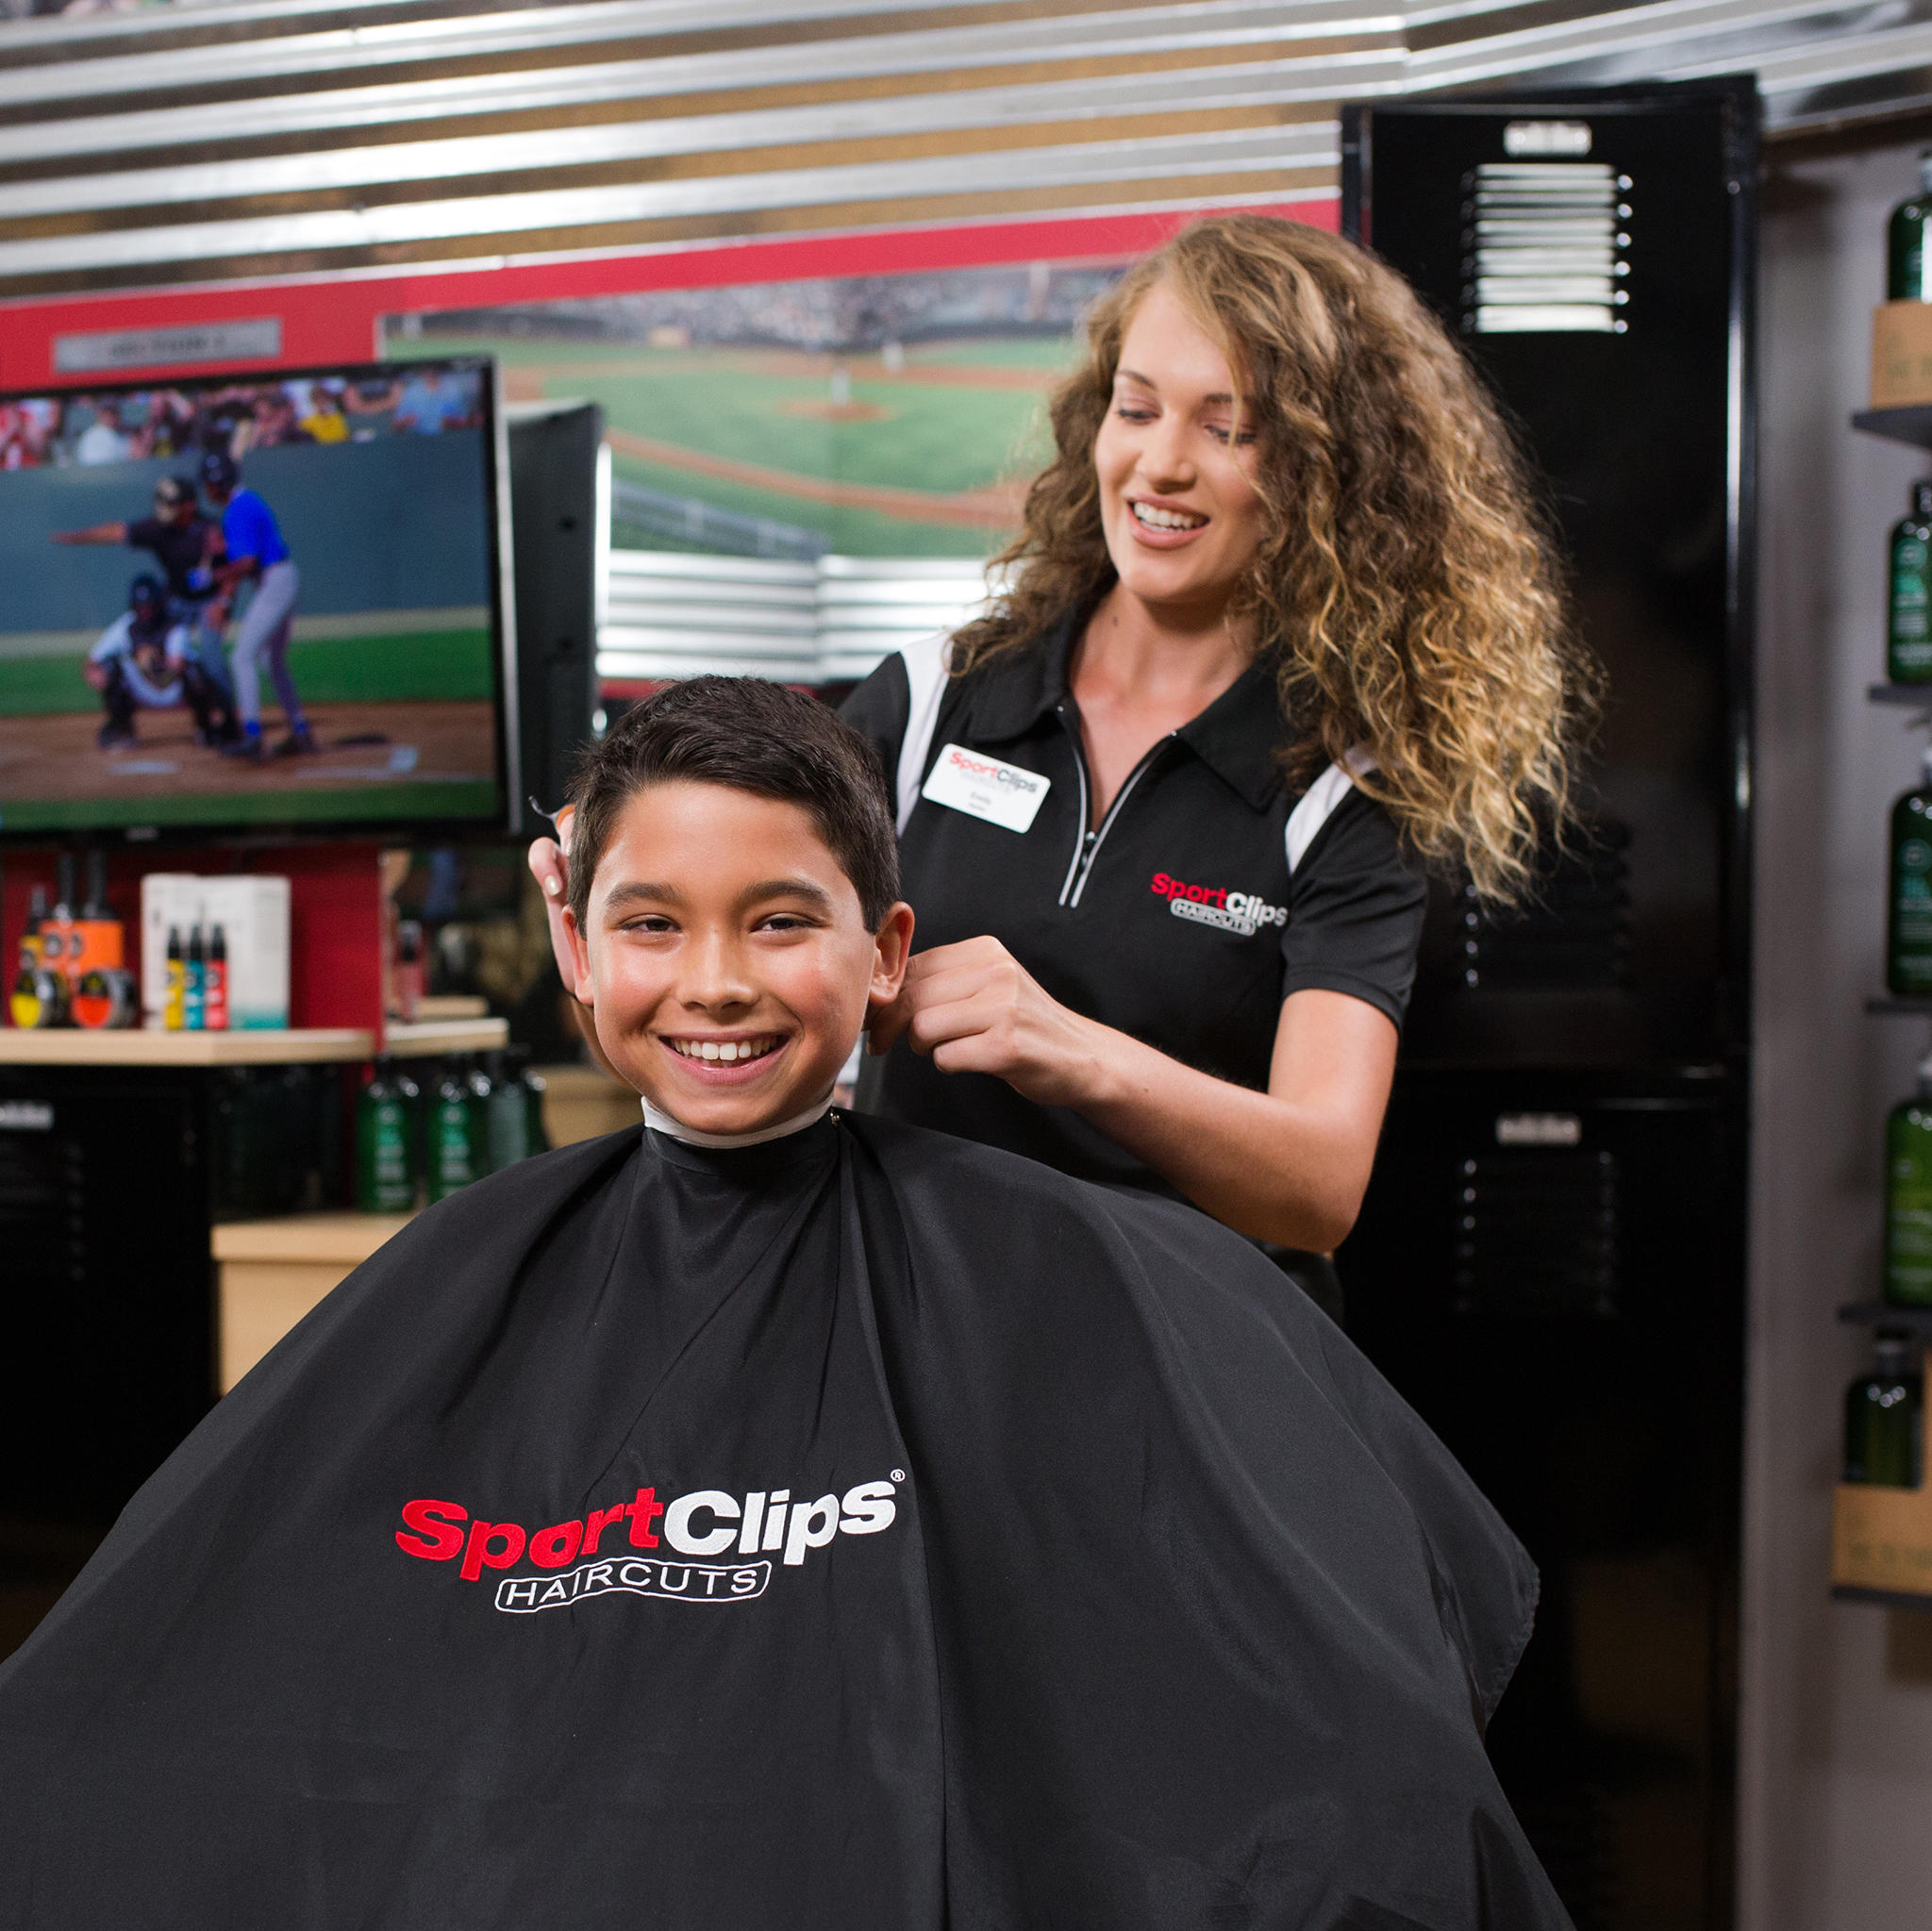 Sport Clips Haircuts of Winston Salem -Thruway Center image 3